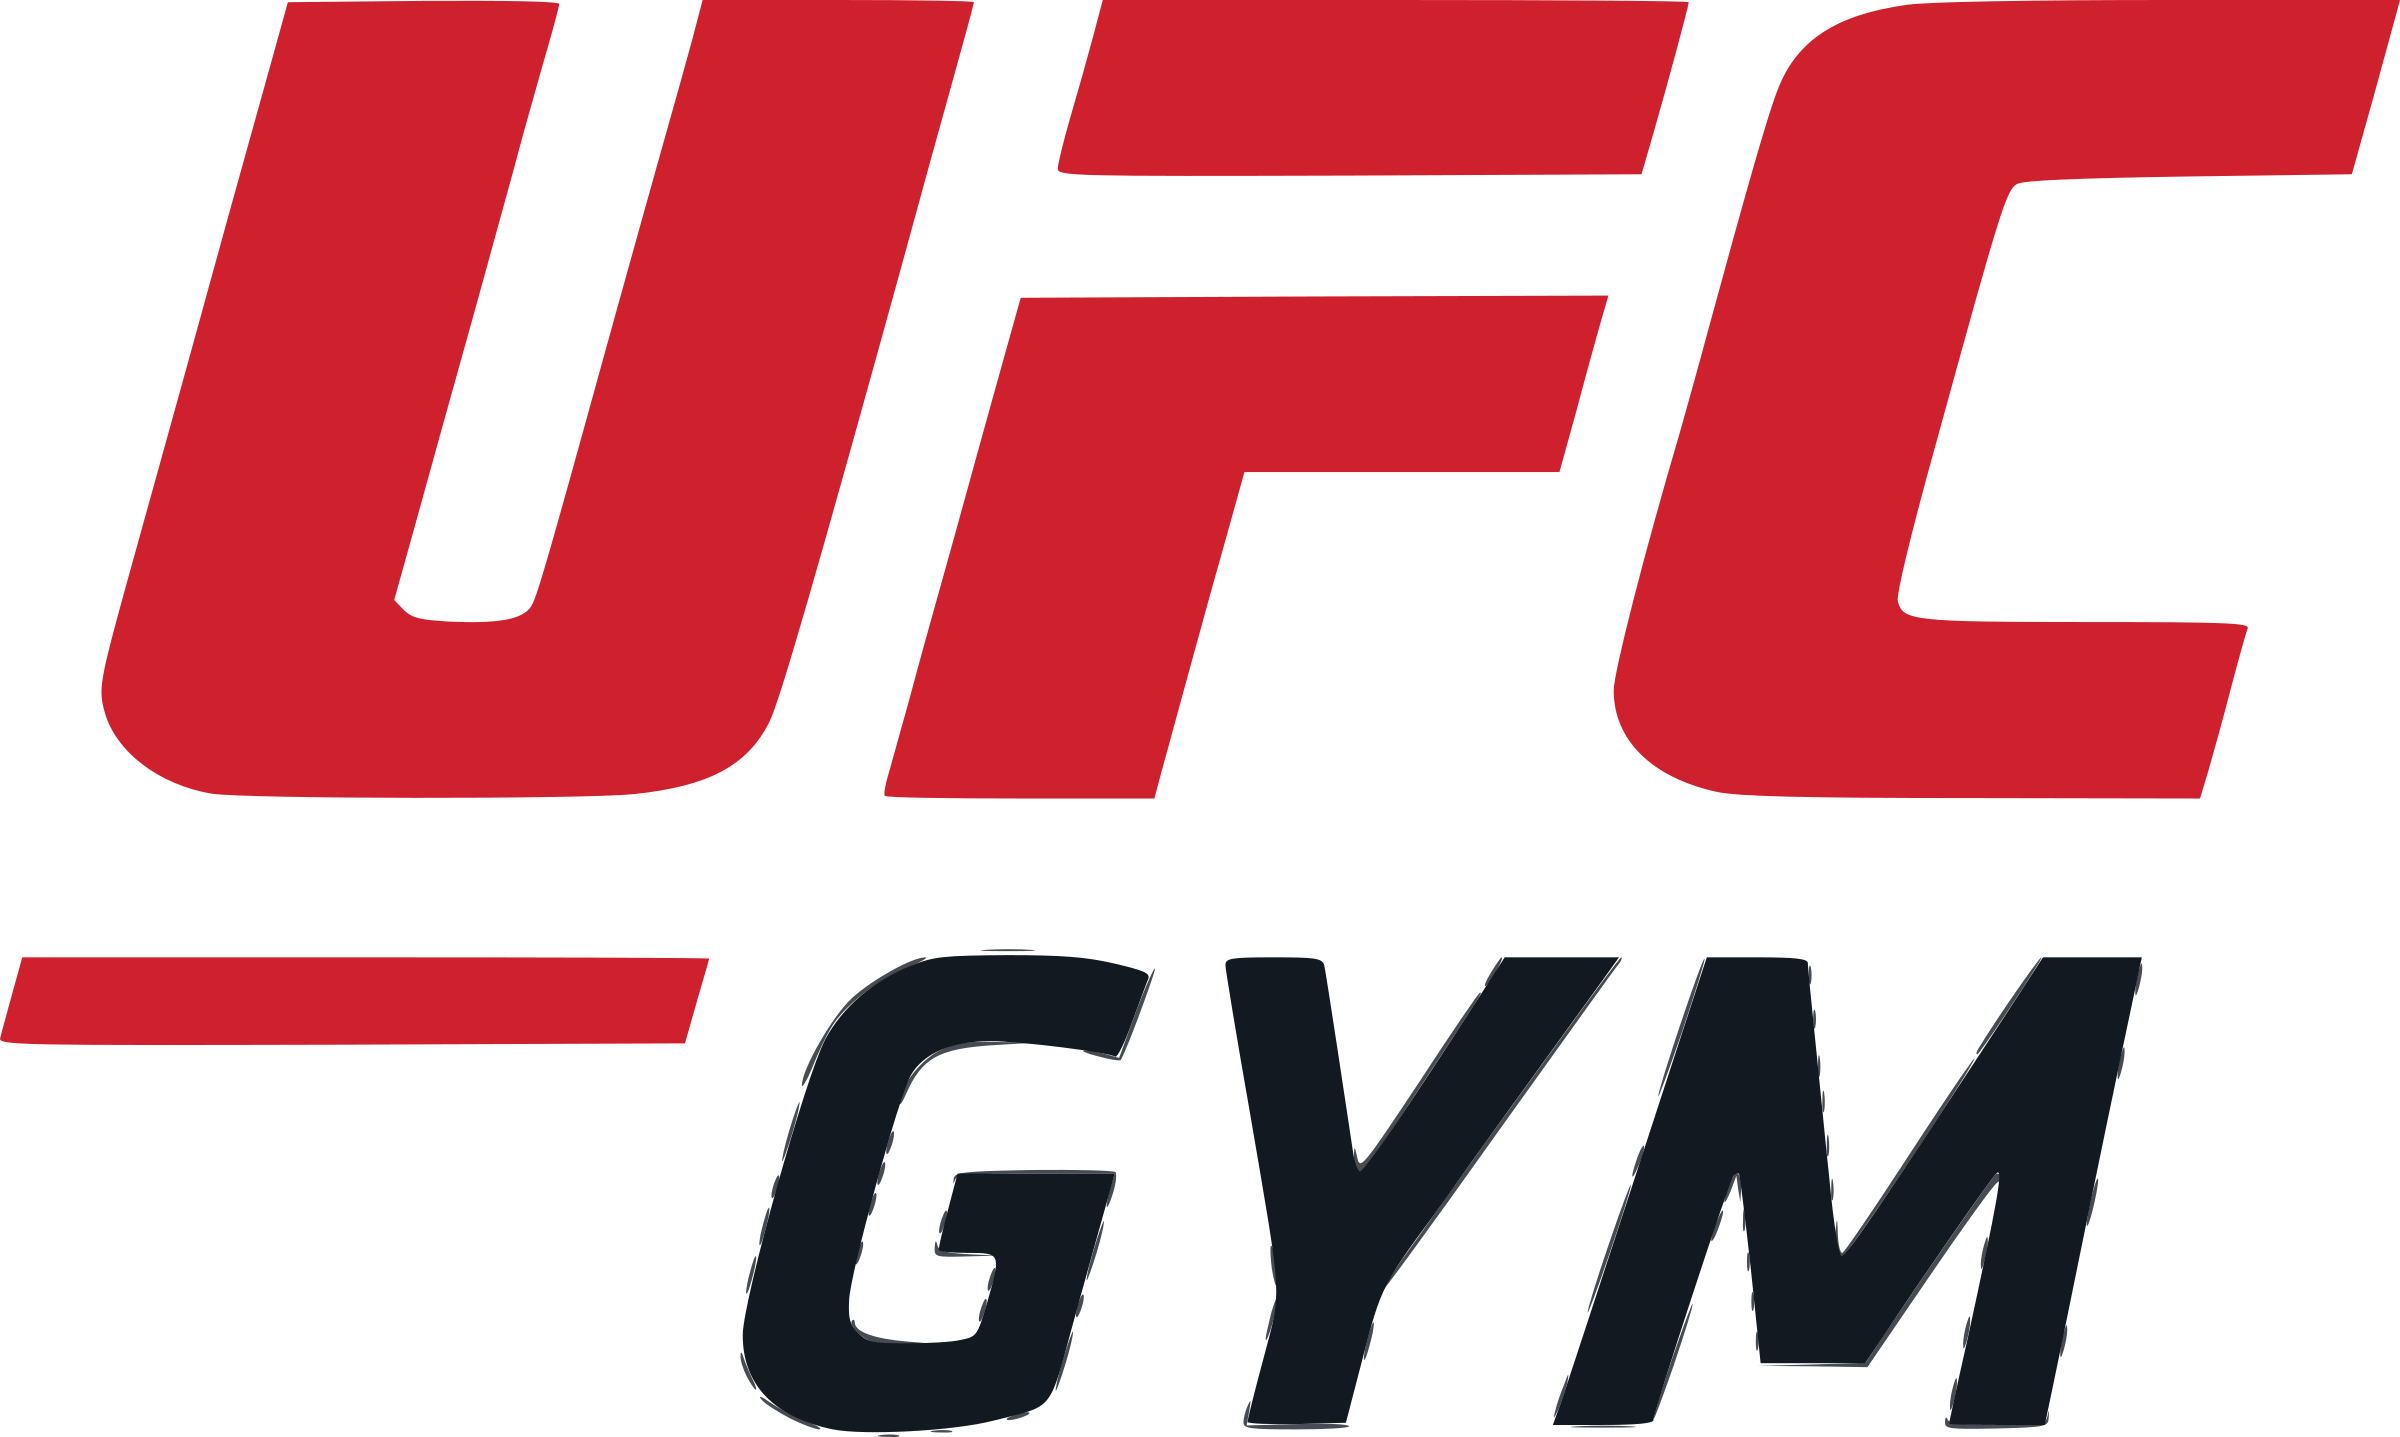 ufc-gym-1-logo-png-transparent.png